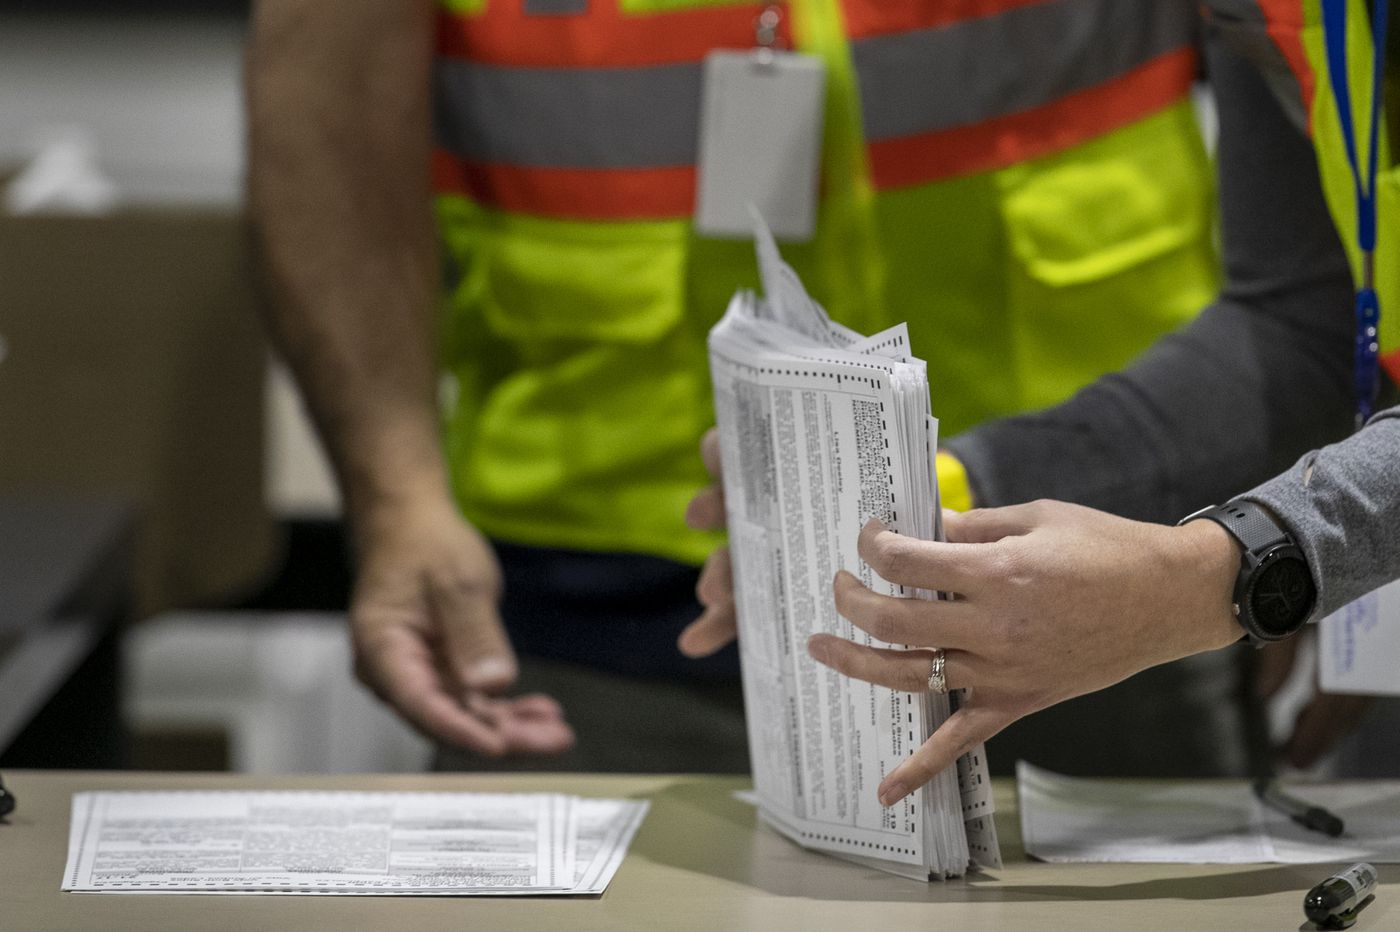 Only 10,000 Pa. mail ballots arrived after Election Day — far too few to change the result if thrown out